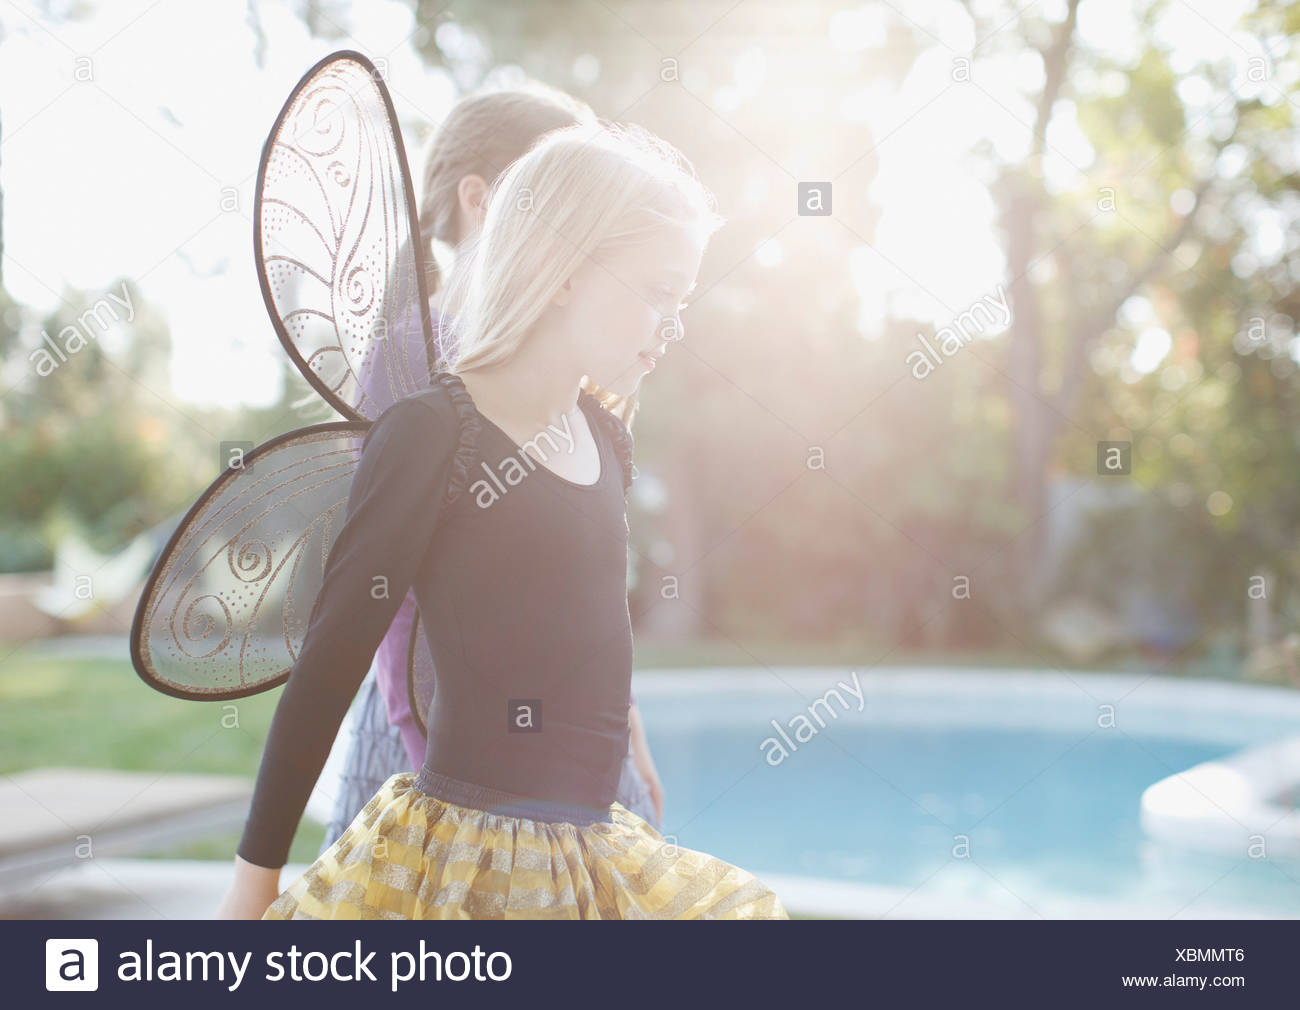 8-9 years,back lit,california,casual clothing,caucasian,childhood,color image,costume,day,domestic life,elementary - Stock Image